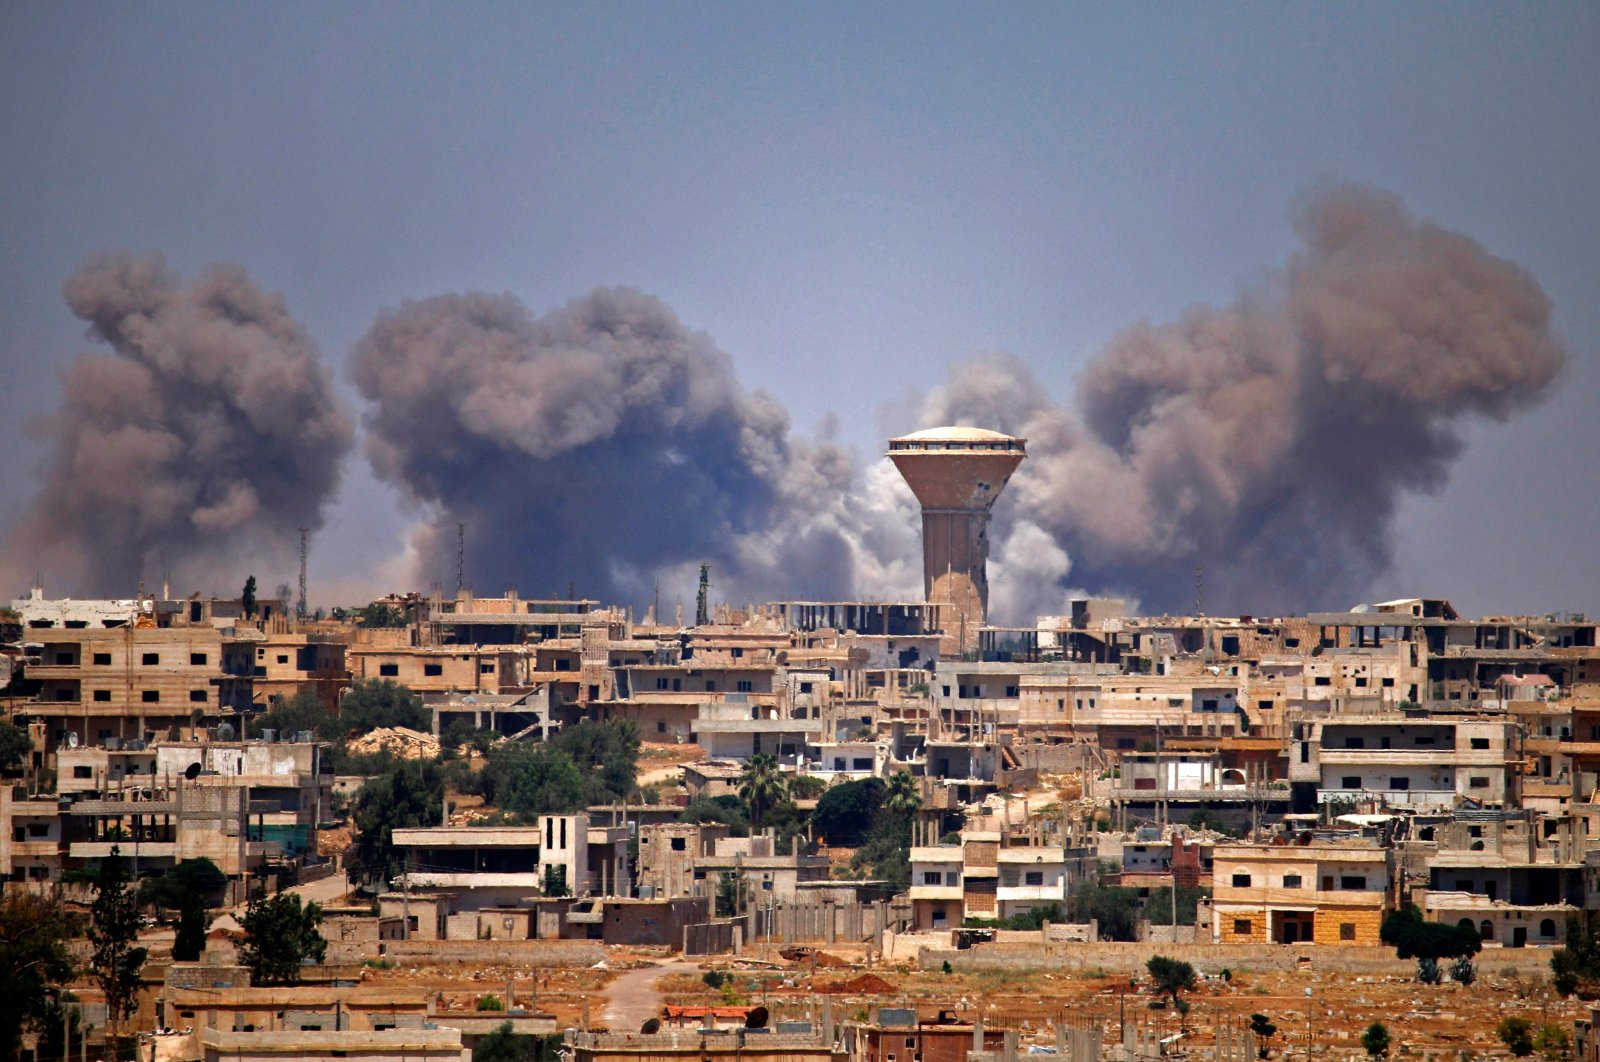 Smoke rises above opposition-held areas of the city of Daraa during airstrikes by the Syrian regime forces, July 5, 2018. (AFP Photo)